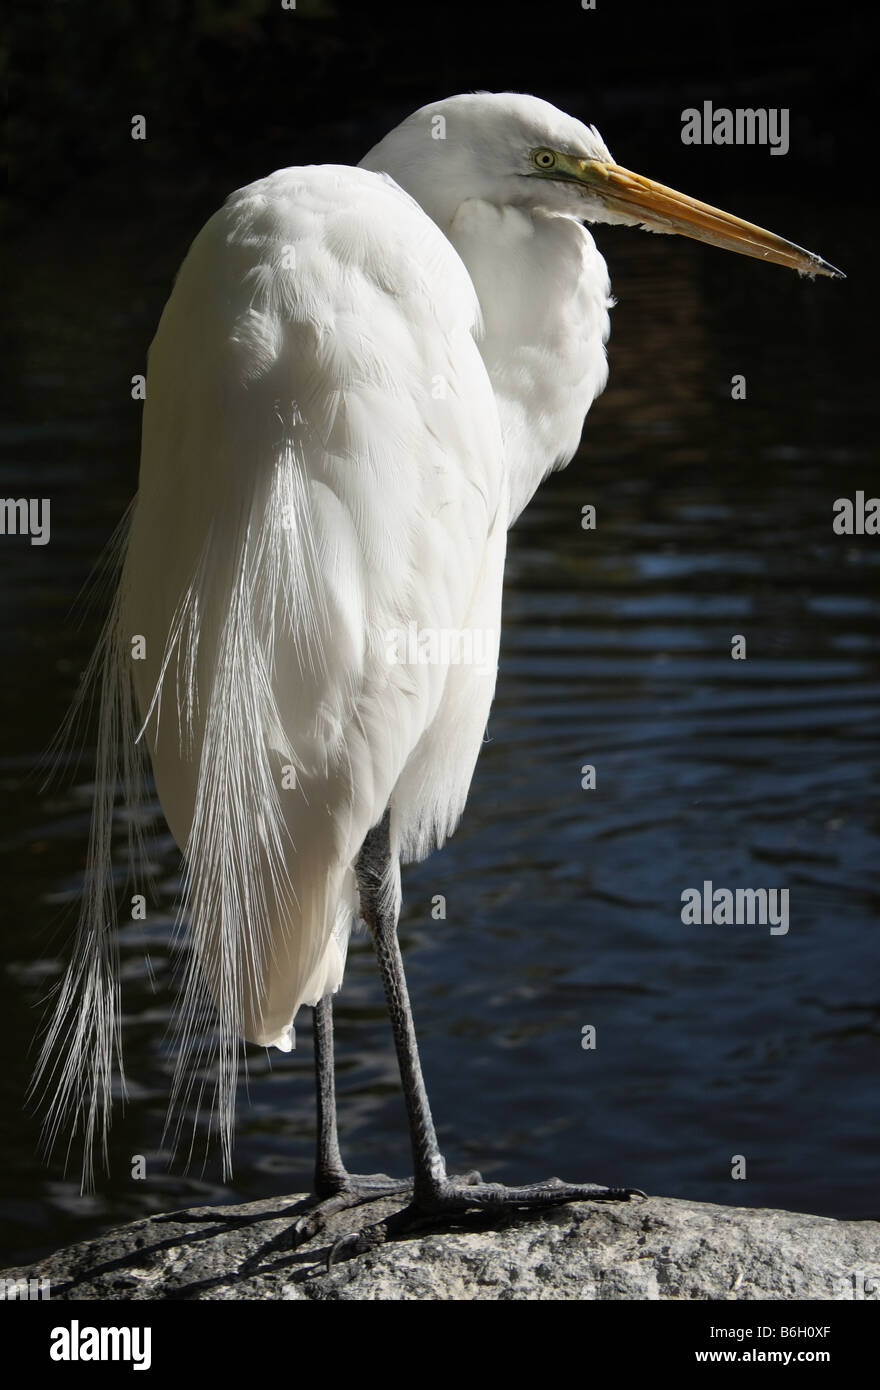 Stock photo of a Great White Egret.The Great Egret Ardea alba also known as the Great White Egret or is a wading - Stock Image